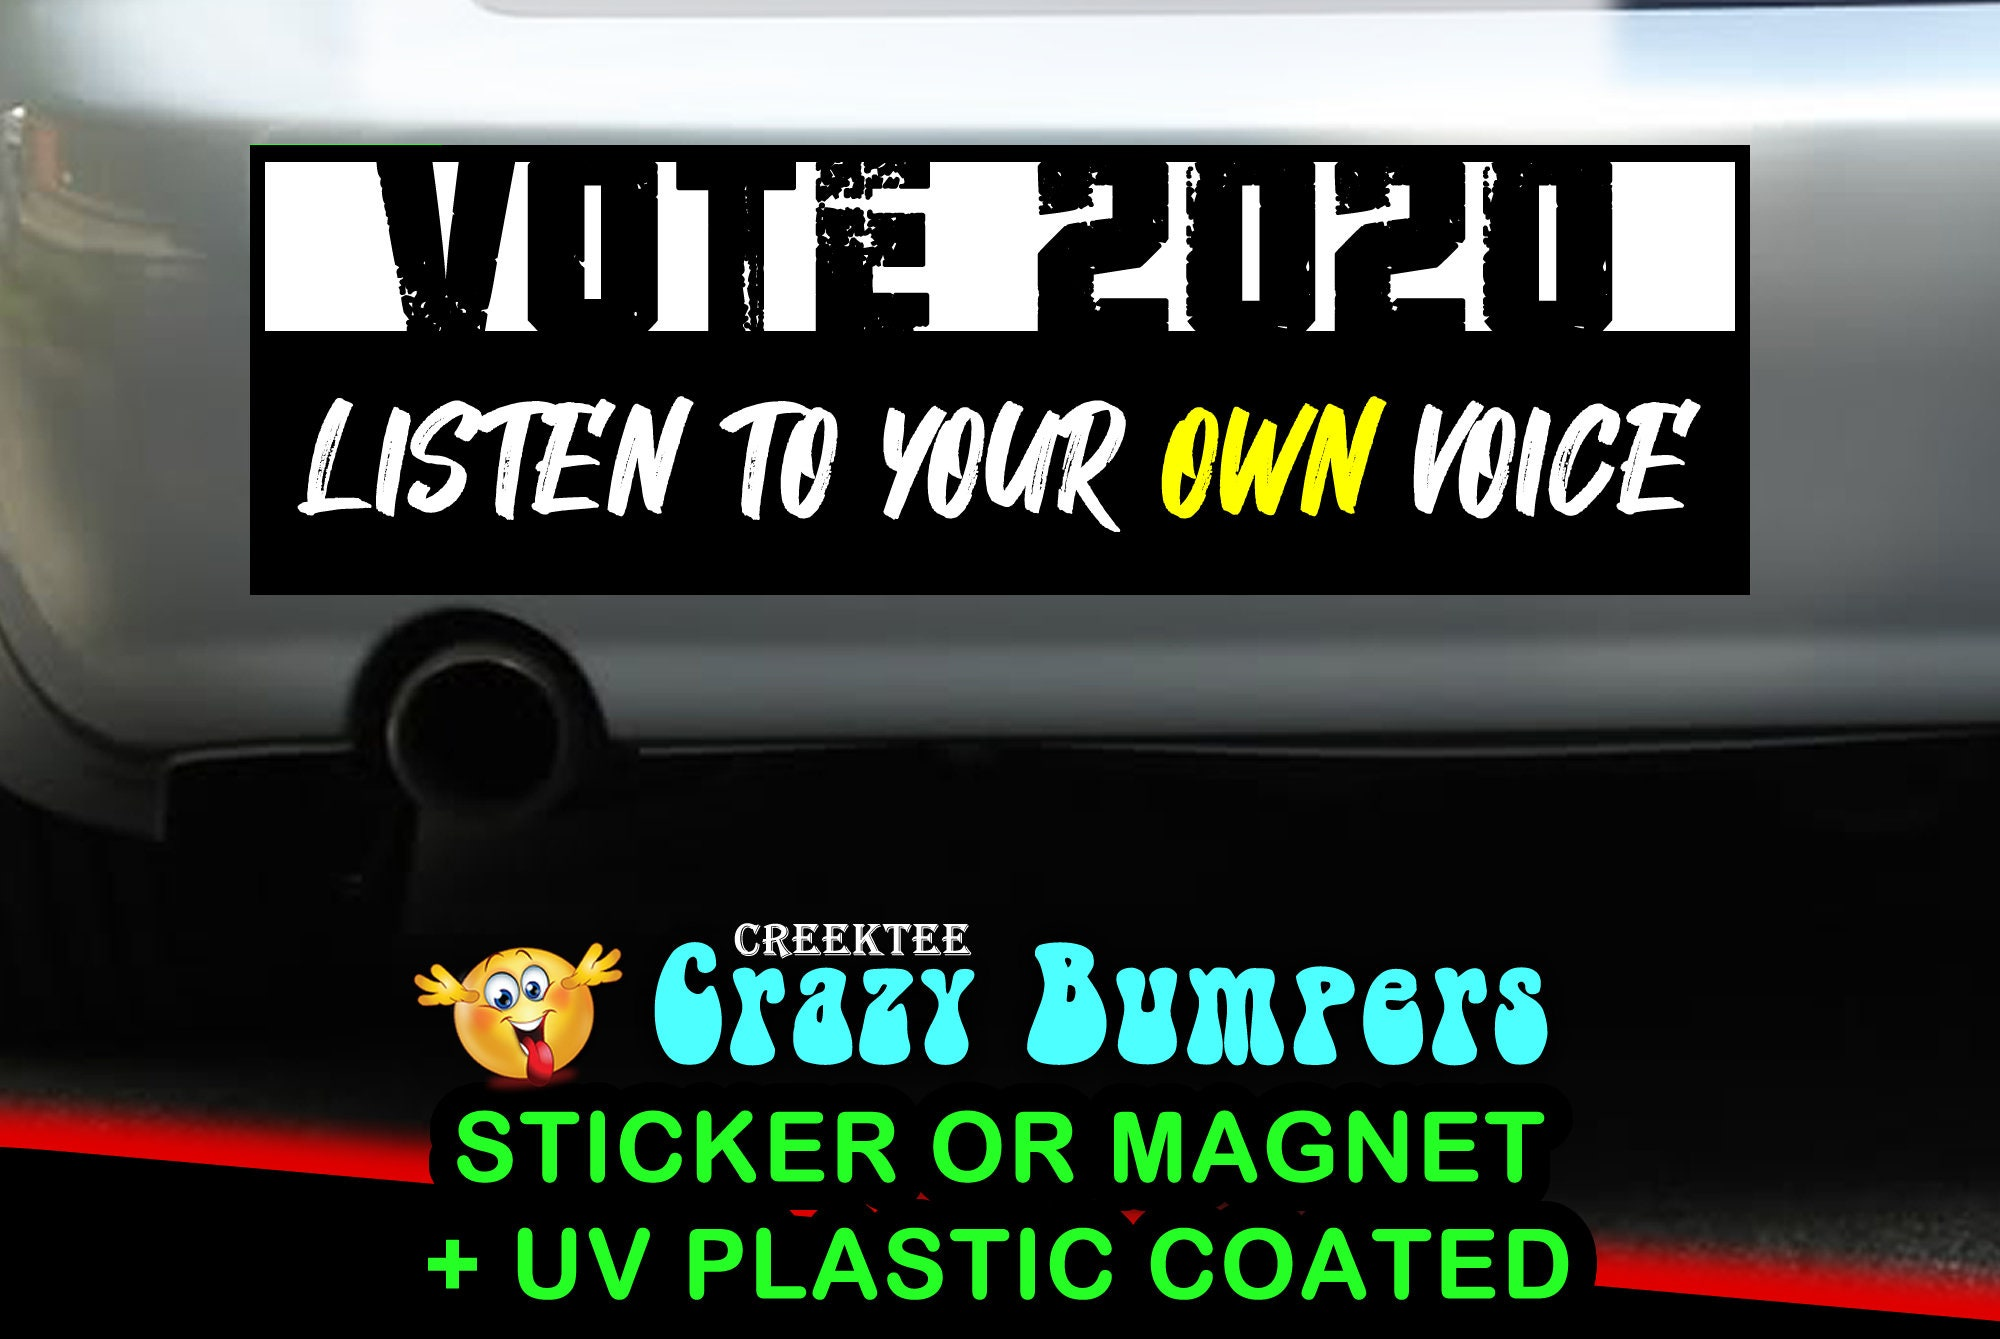 CAD$7.99 - Vote 2020 Listen To Your Own Voice 10 x 3 Bumper Sticker or Magnetic Bumper Sticker Available